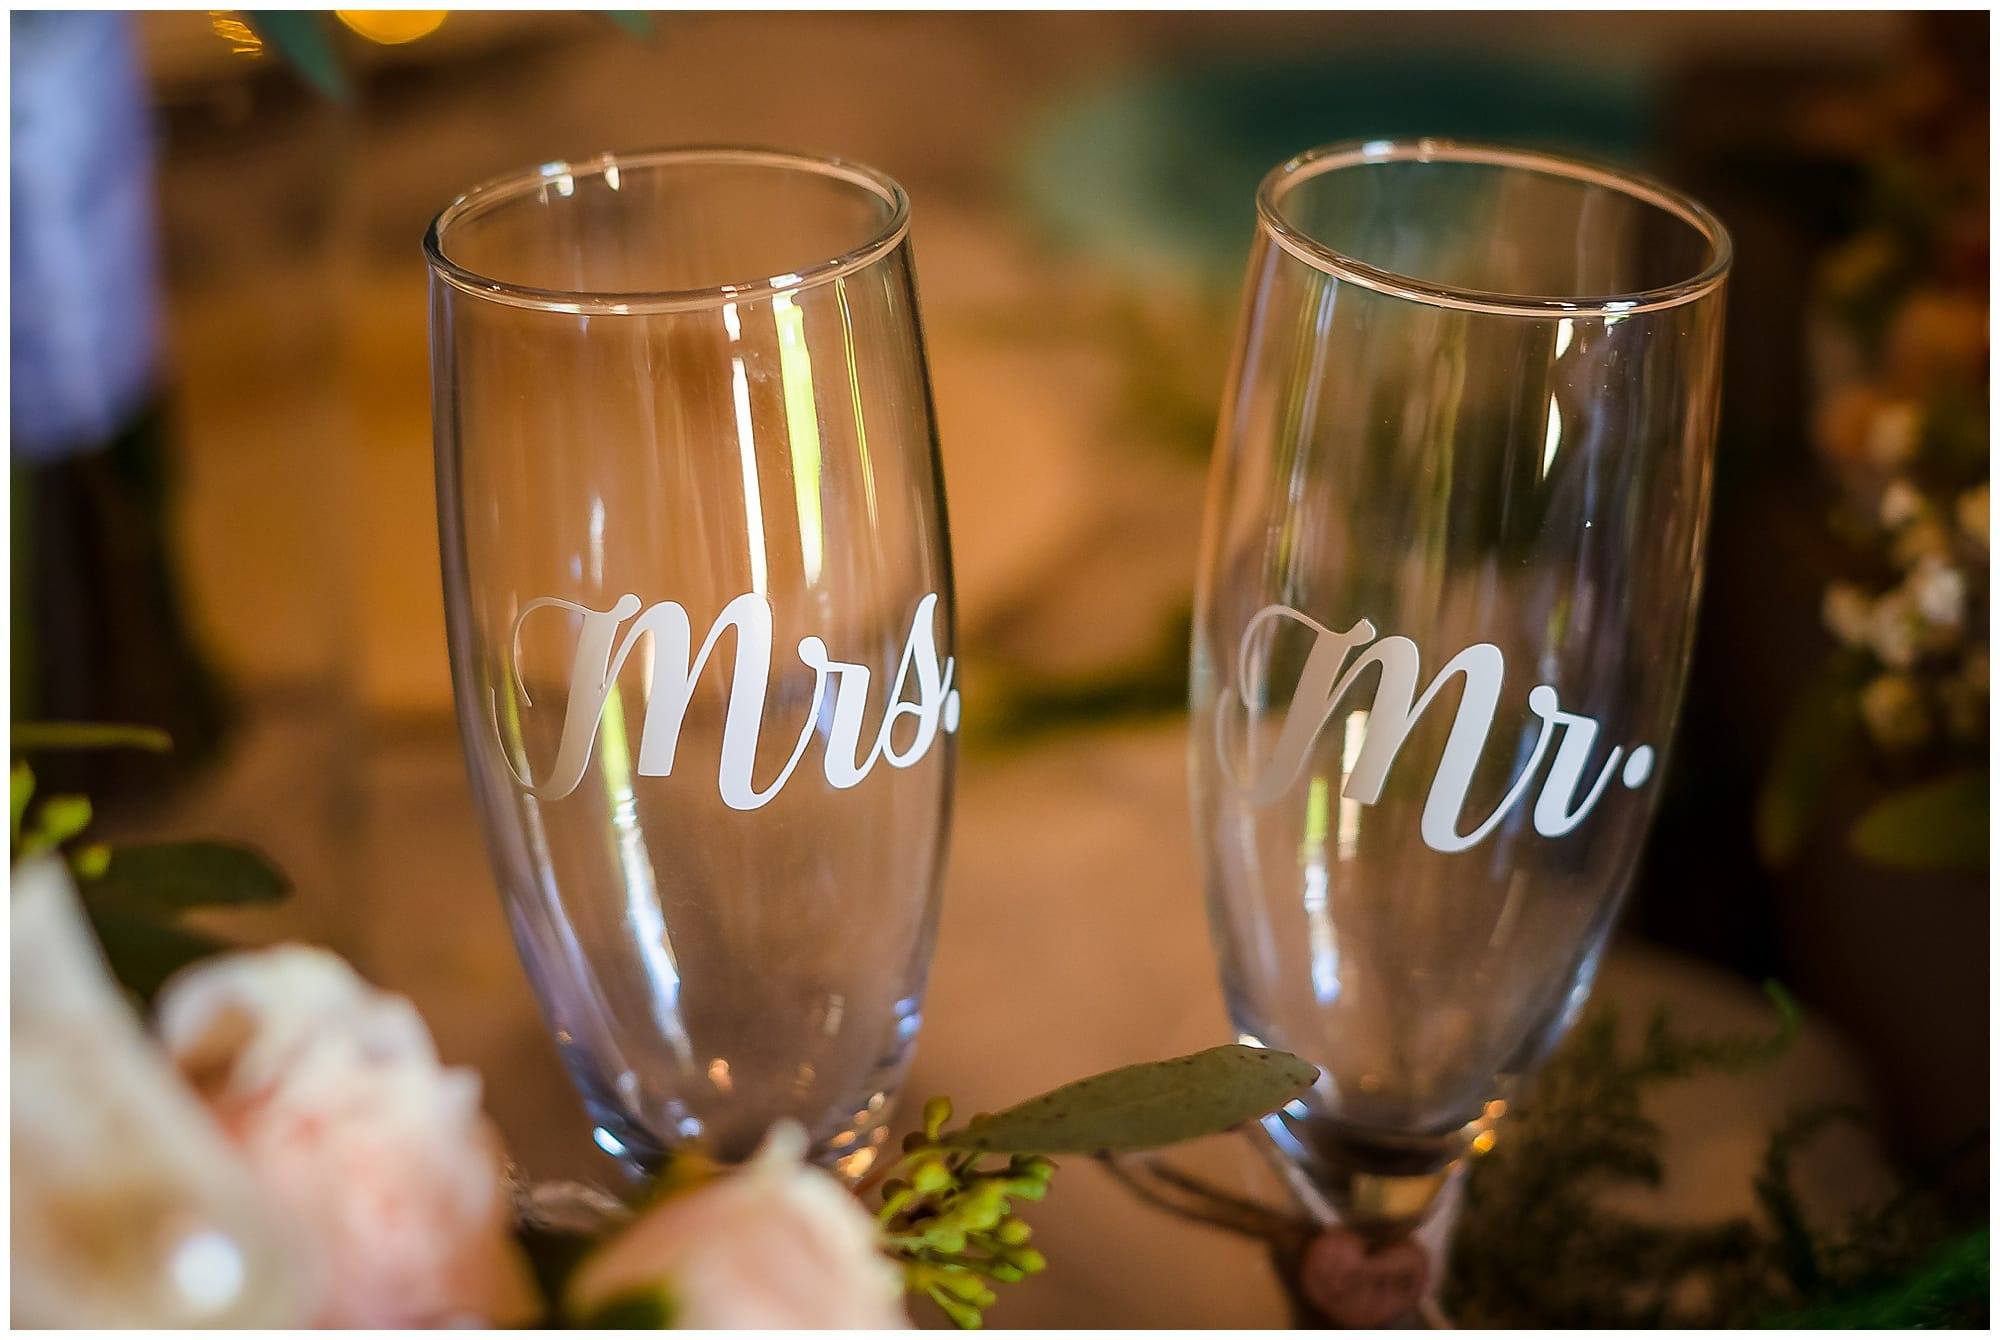 The Barn at TH Farm champagne glasses